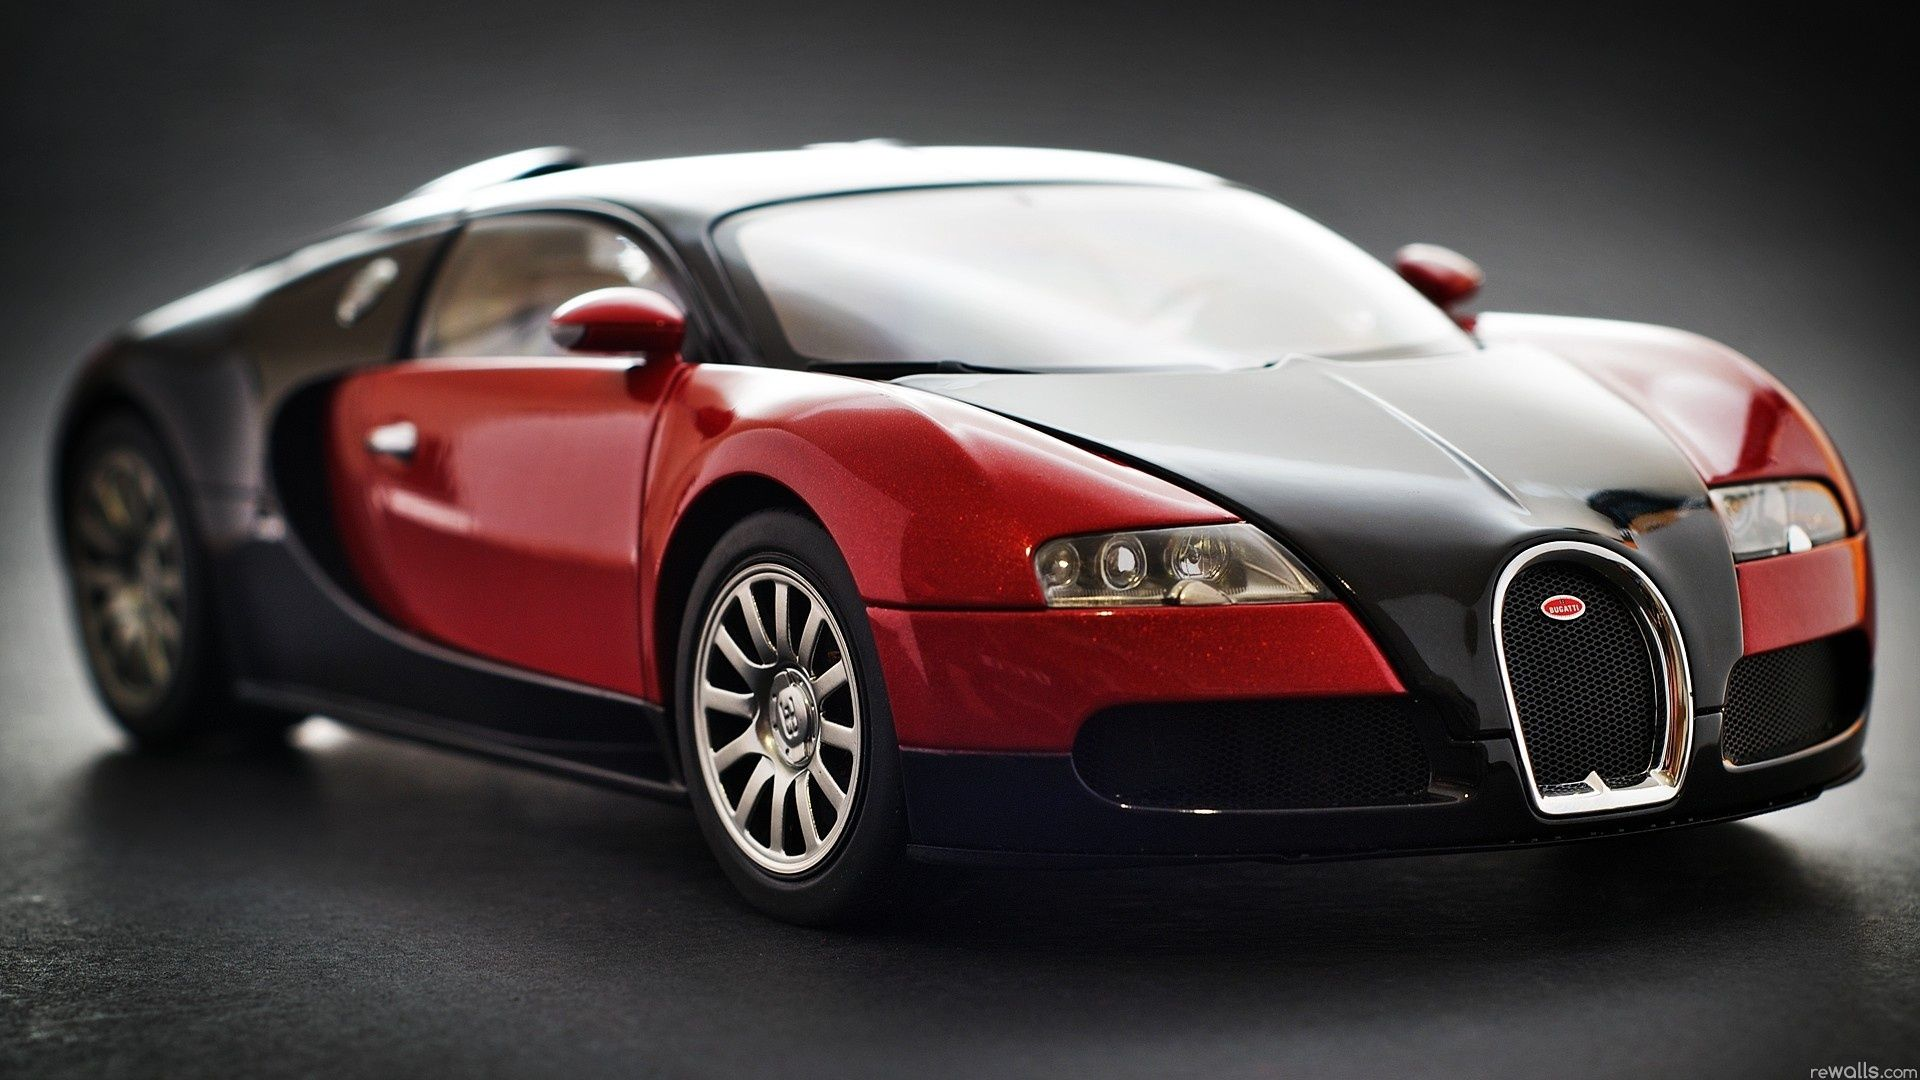 Wallpapers Of Bugatti Veyron Wallpapers) U2013 Art Wallpapers. Car Wallpapers  ...